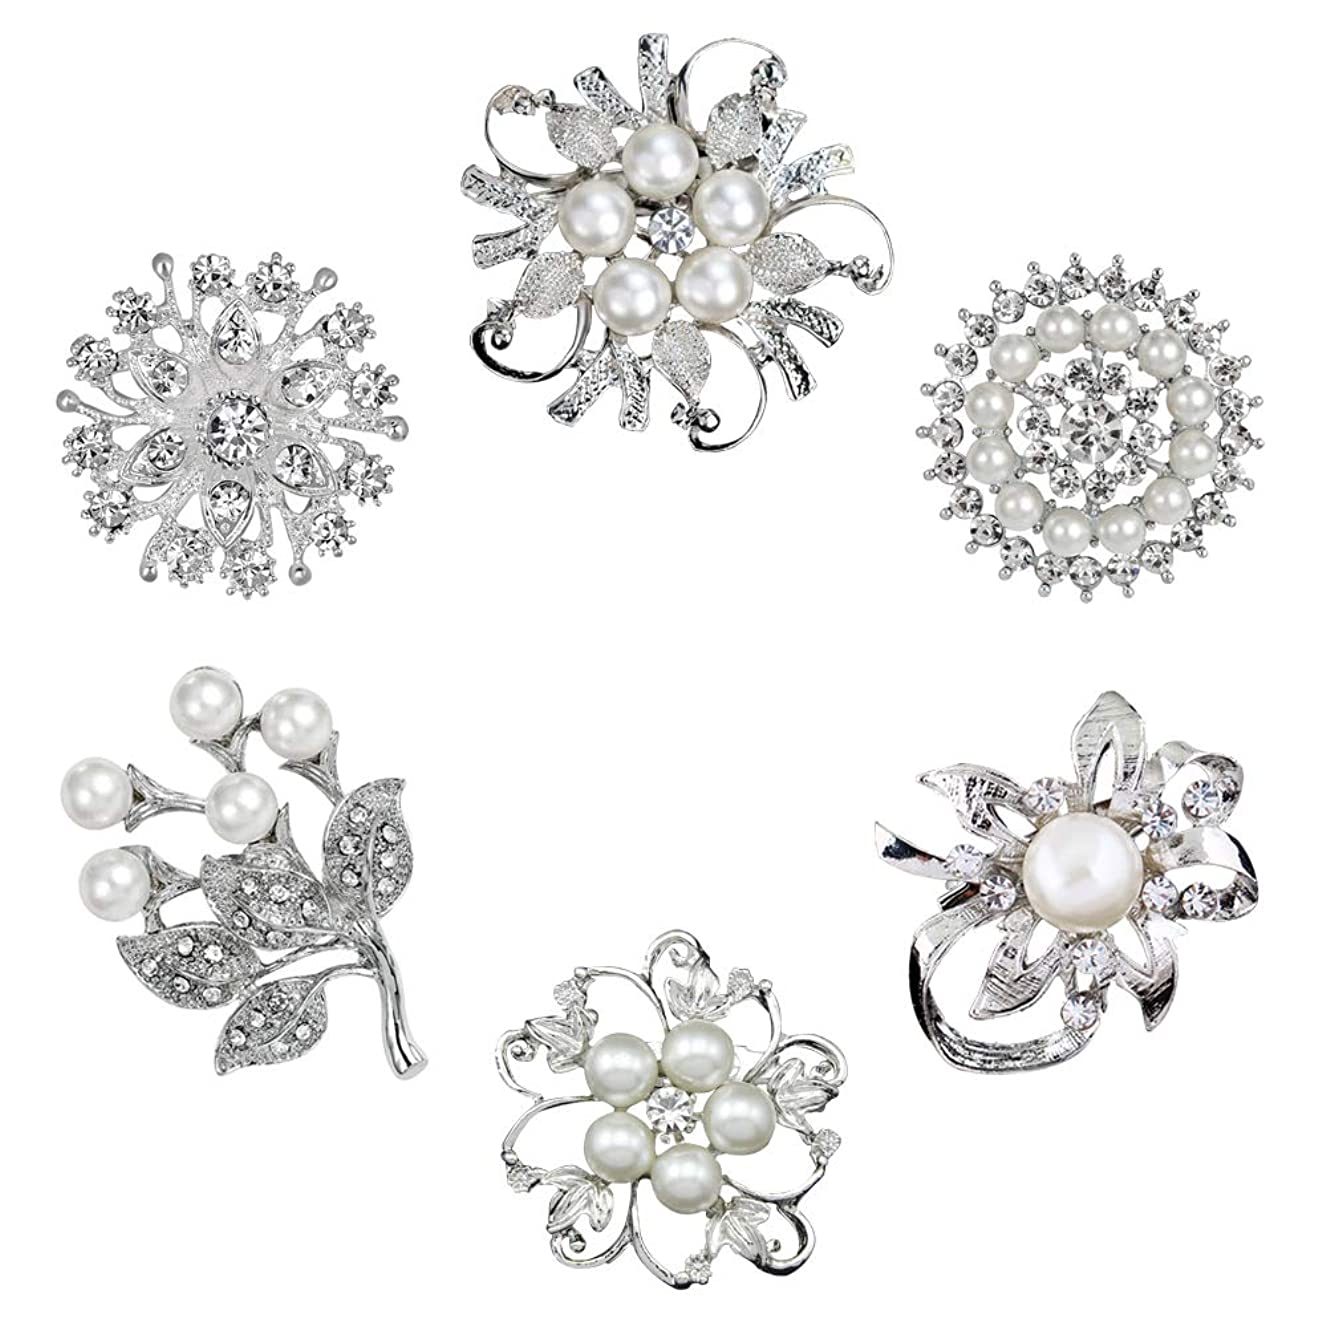 Xixihaha Rhinestone Crystal Flower Brooches Pins for DIY Weeding Bridal Bouquet Brooches Pack of 6